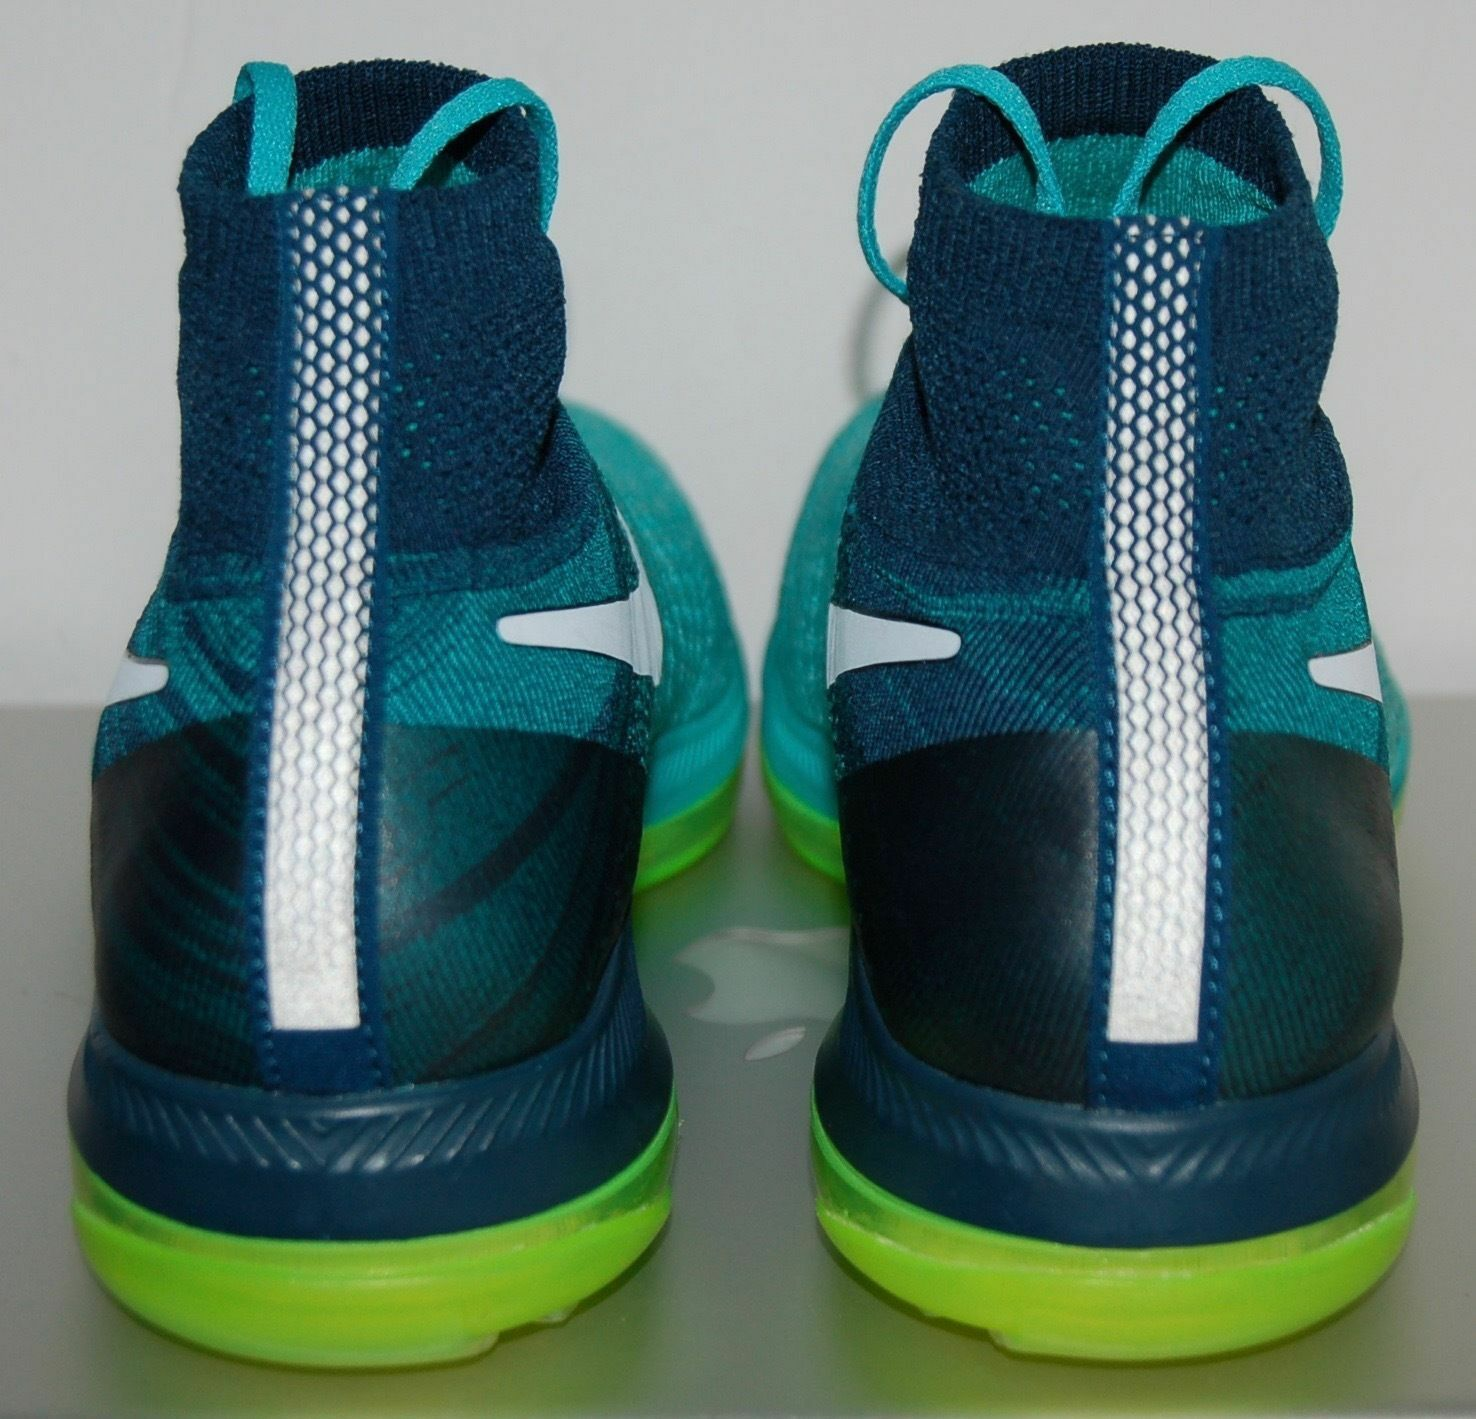 Nike Air Women's Zoom All Out Flyknit Running shoes shoes shoes 845361-313 US Size 6.5 df7e00